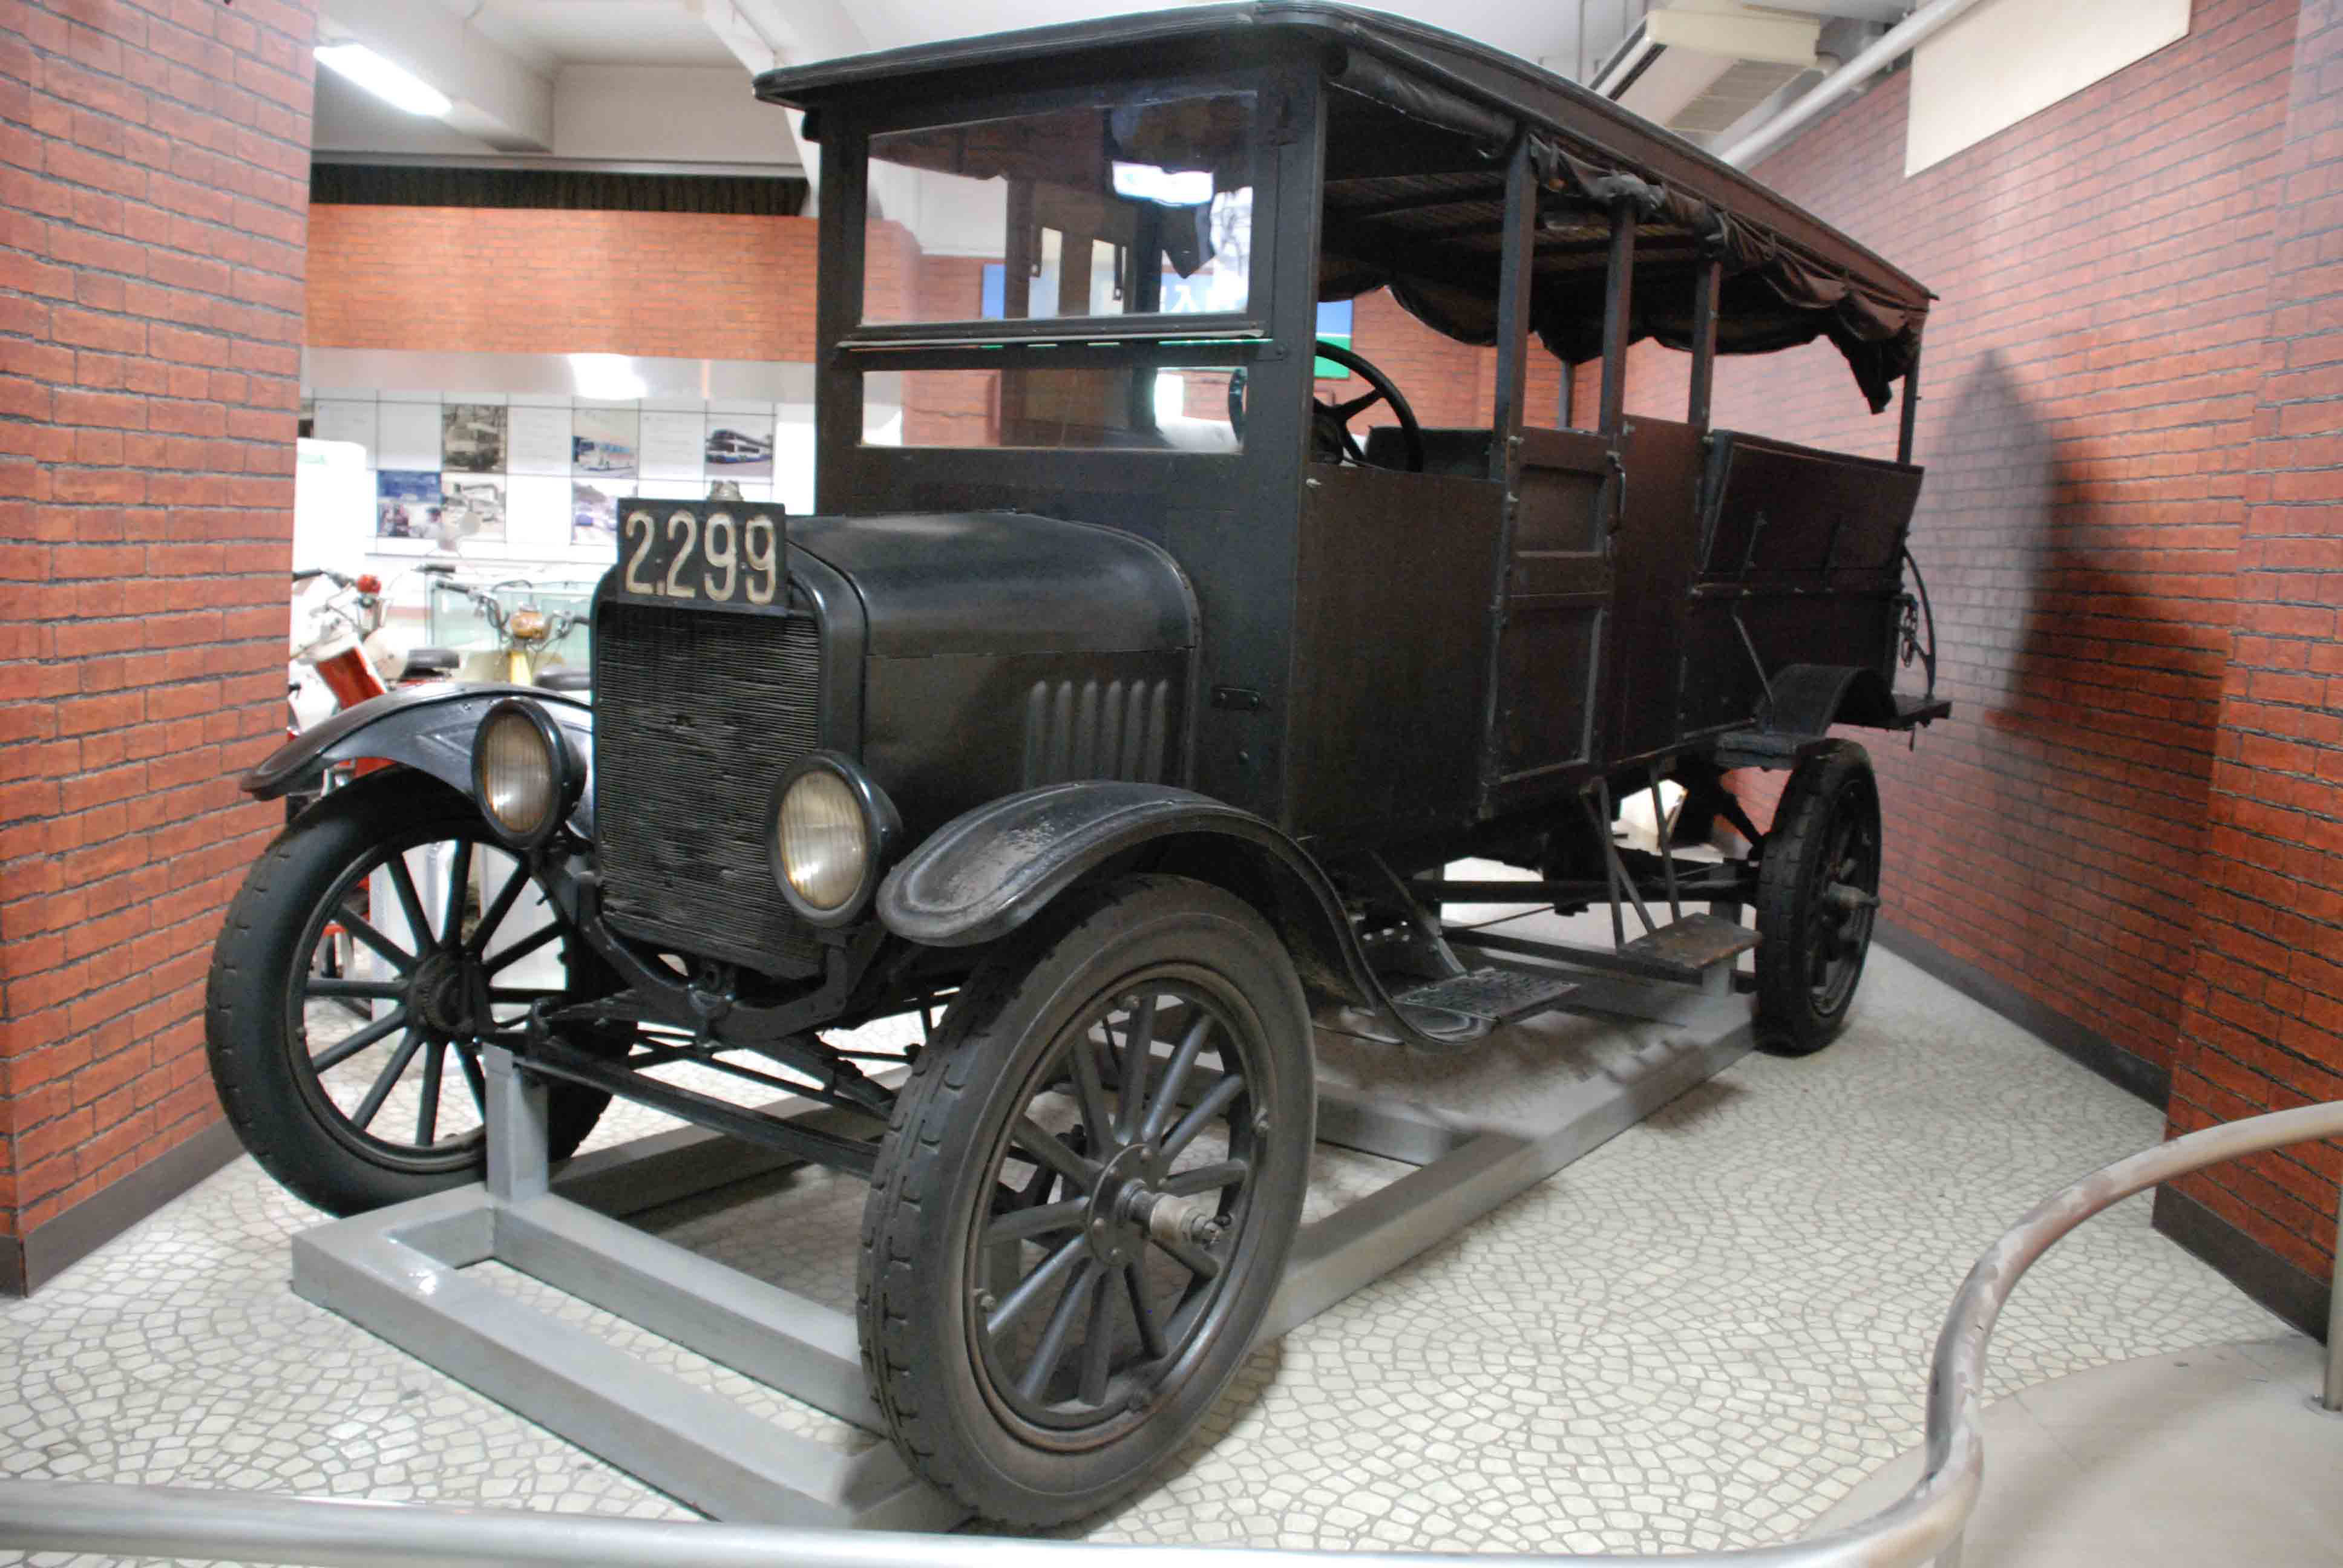 A Ford Model T bus that was in use in Tokyo soon after the Great Kanto Earthquake in 1923 | EDO-TOKYO MUSEUM